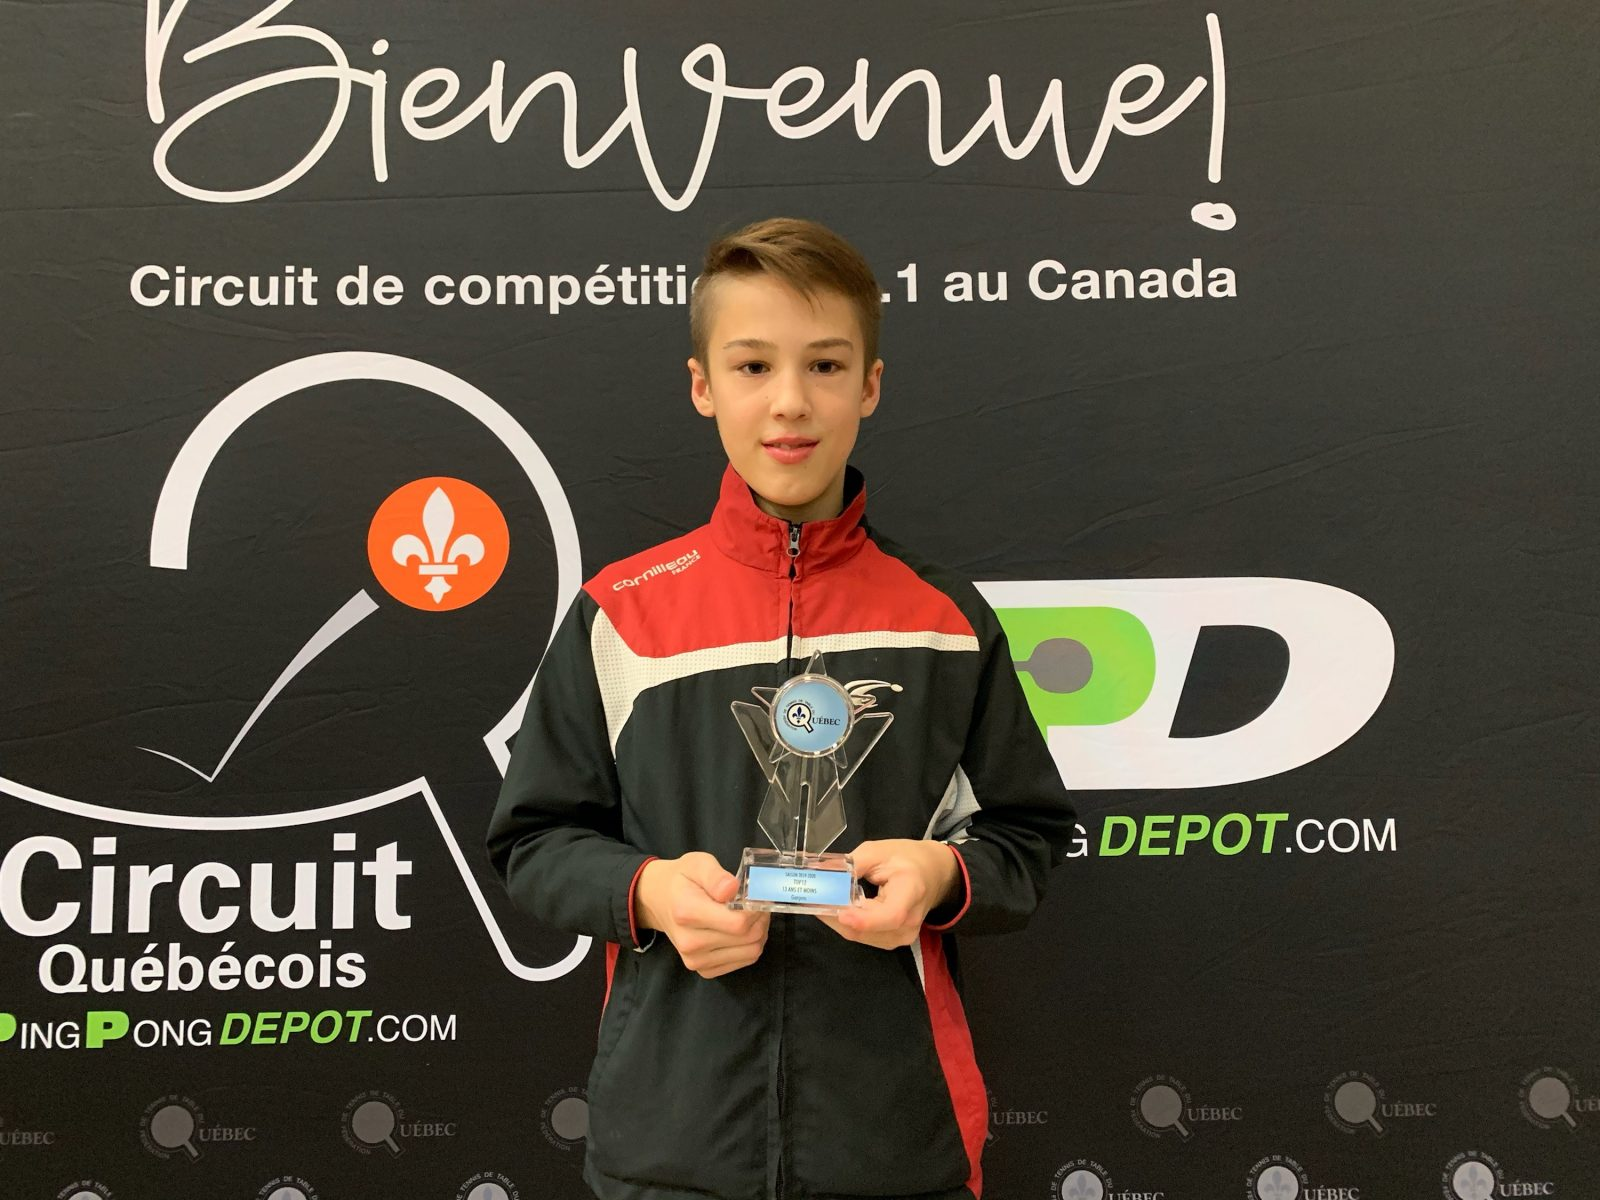 Une médaille d'or pour Andy Bourgeois